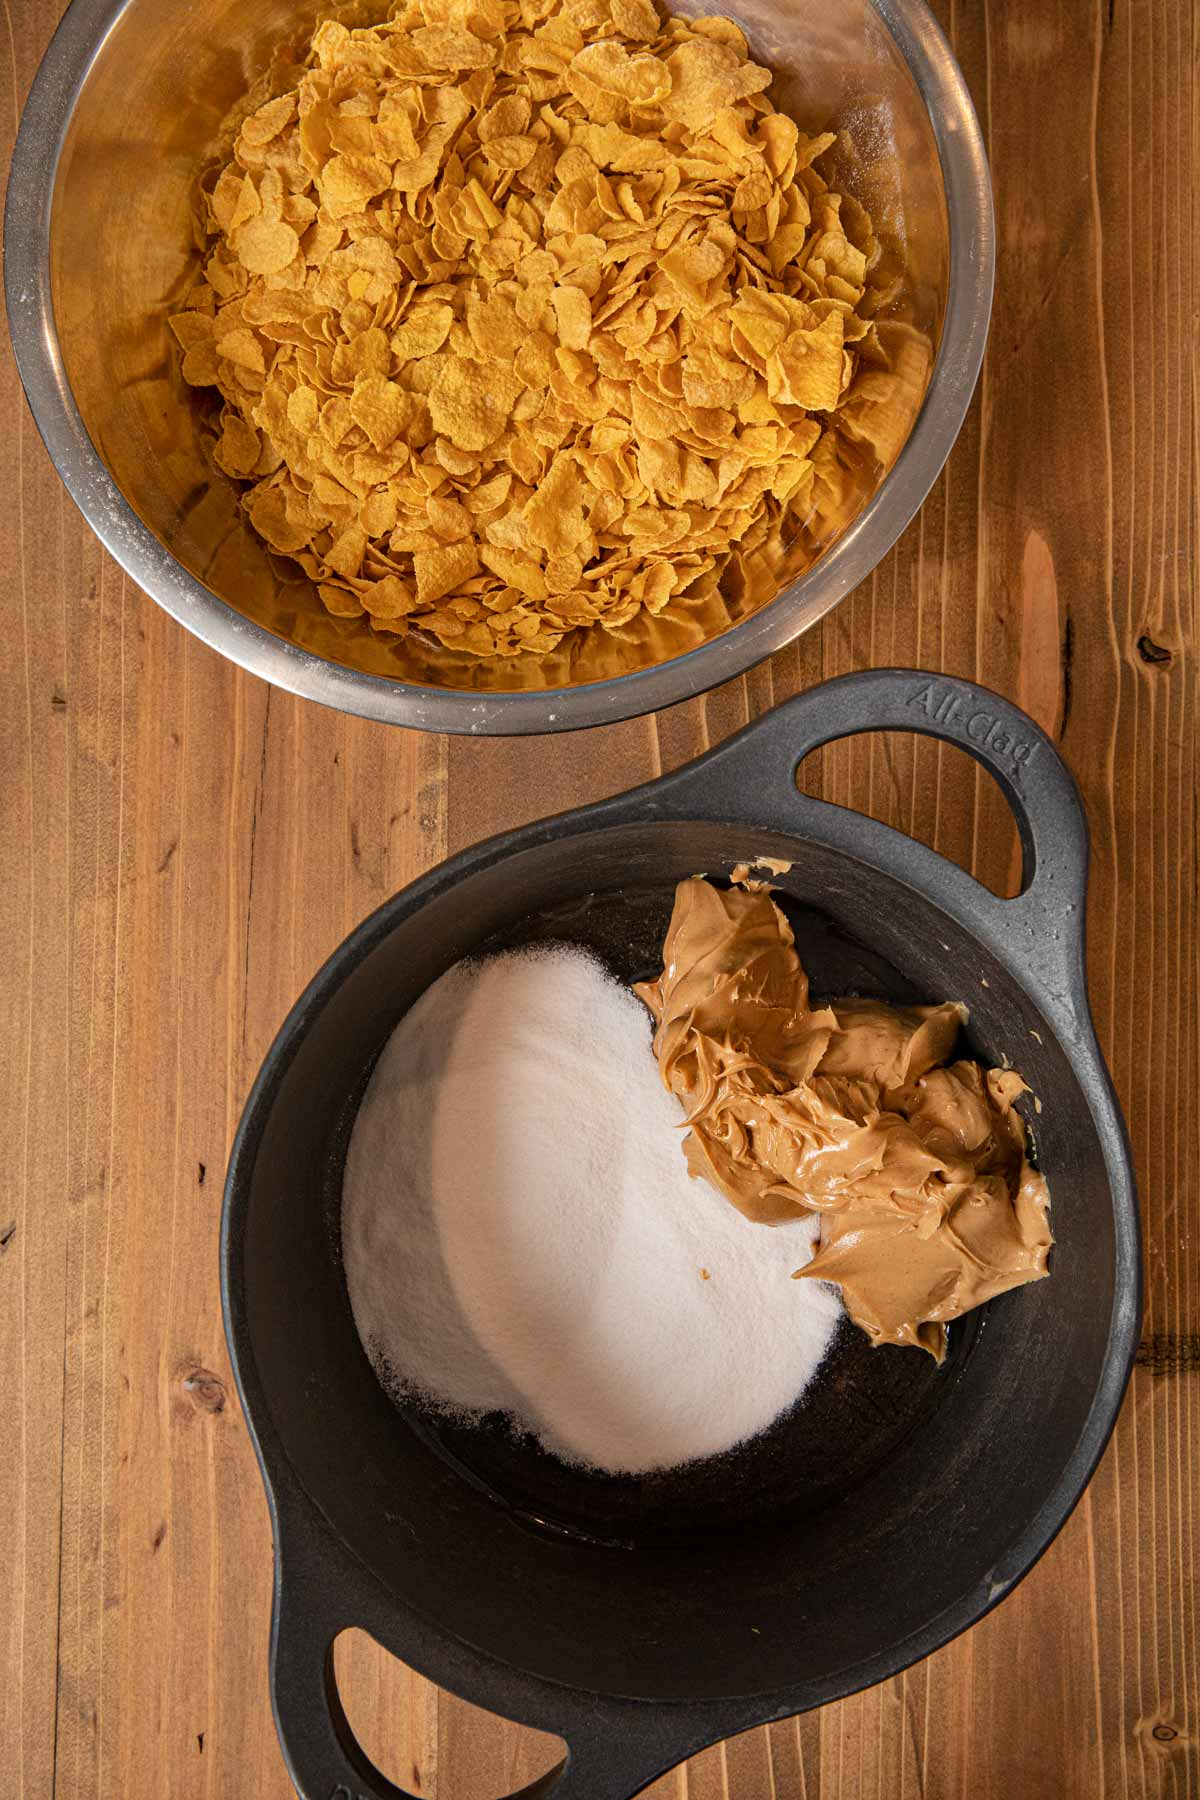 Peanut Butter Cornflake Bars peanut butter and sugar in pot with cornflakes in bowl